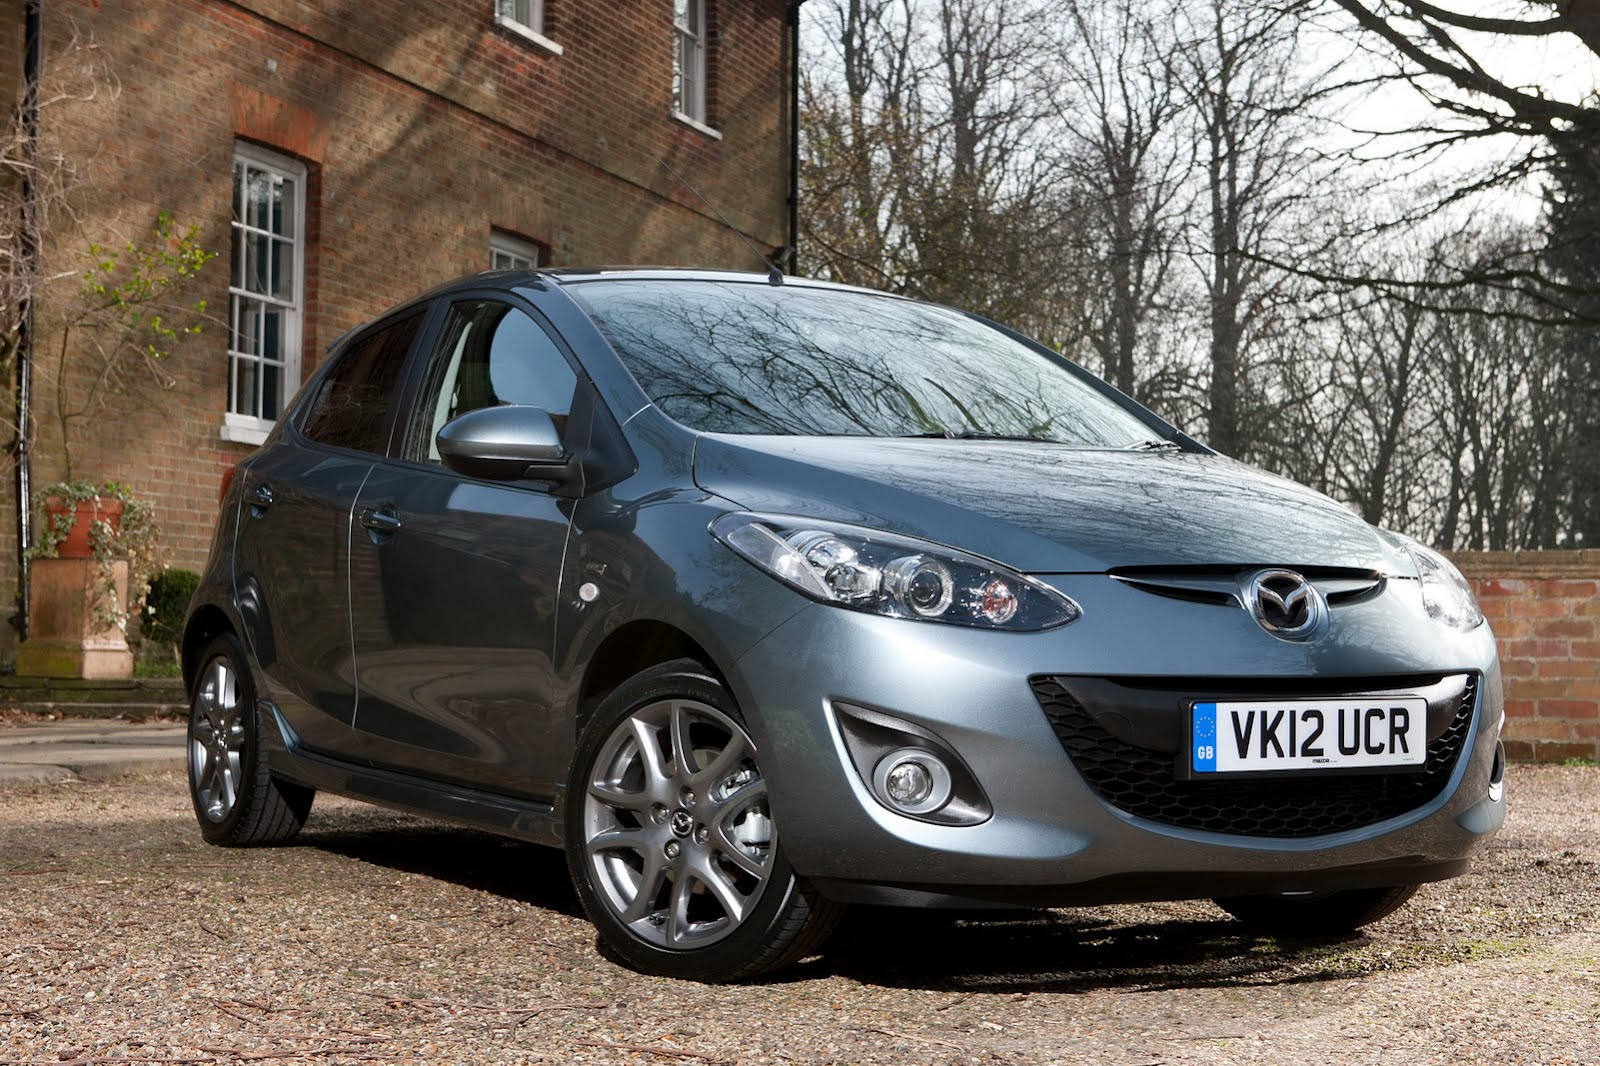 2012 Mazda2 Venture Edition 2012 Mazda2 Venture Edition – Superb Curb Appeal